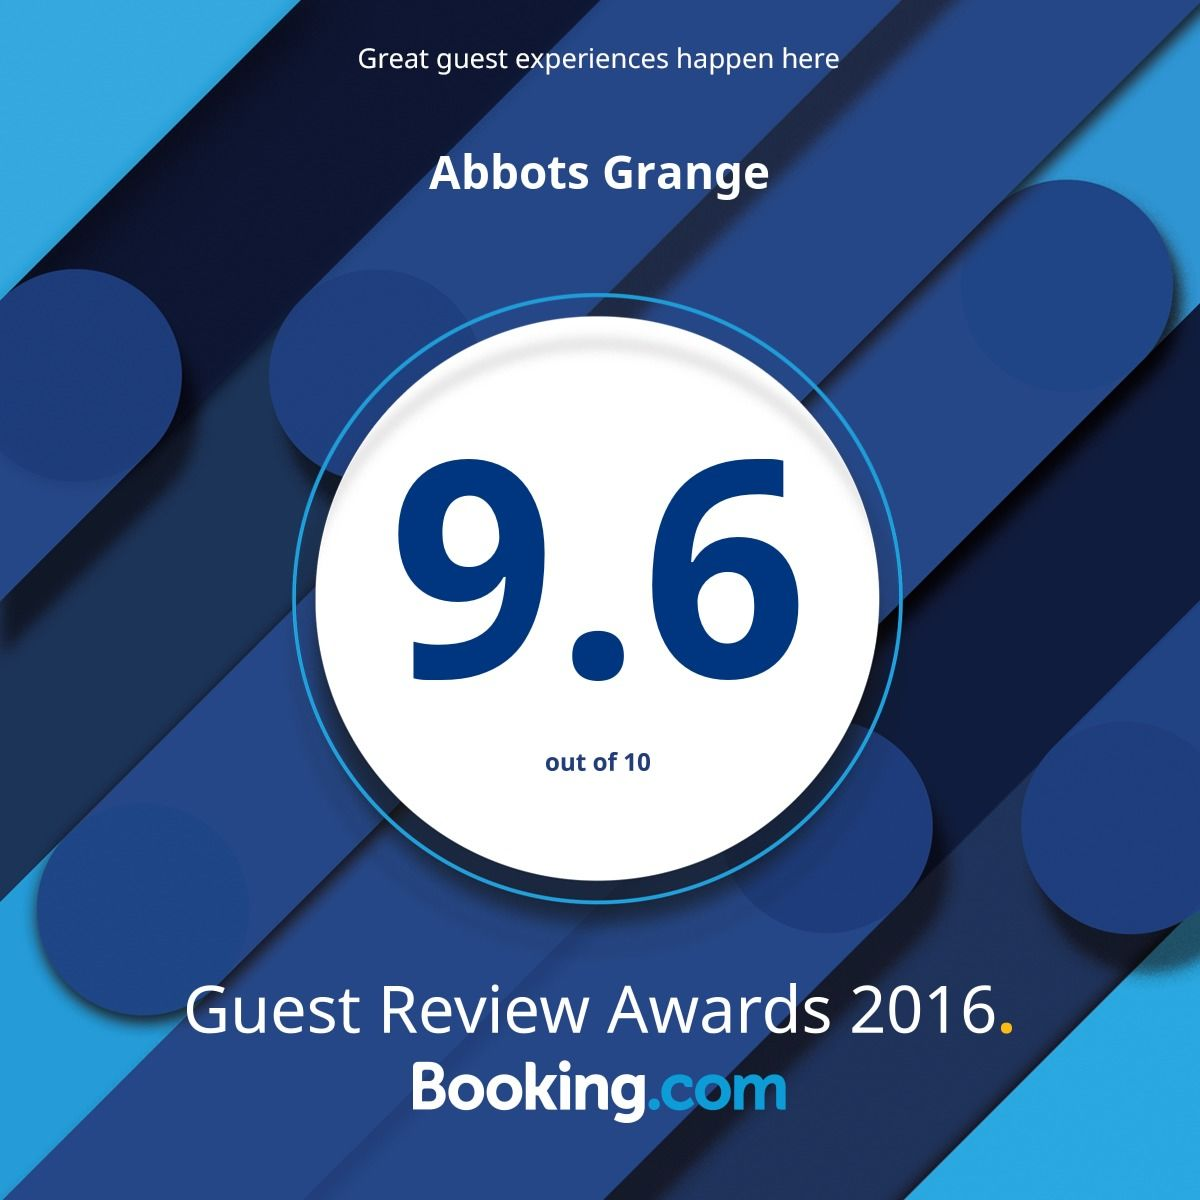 Booking.com Guest Award 2016 9.6 rating